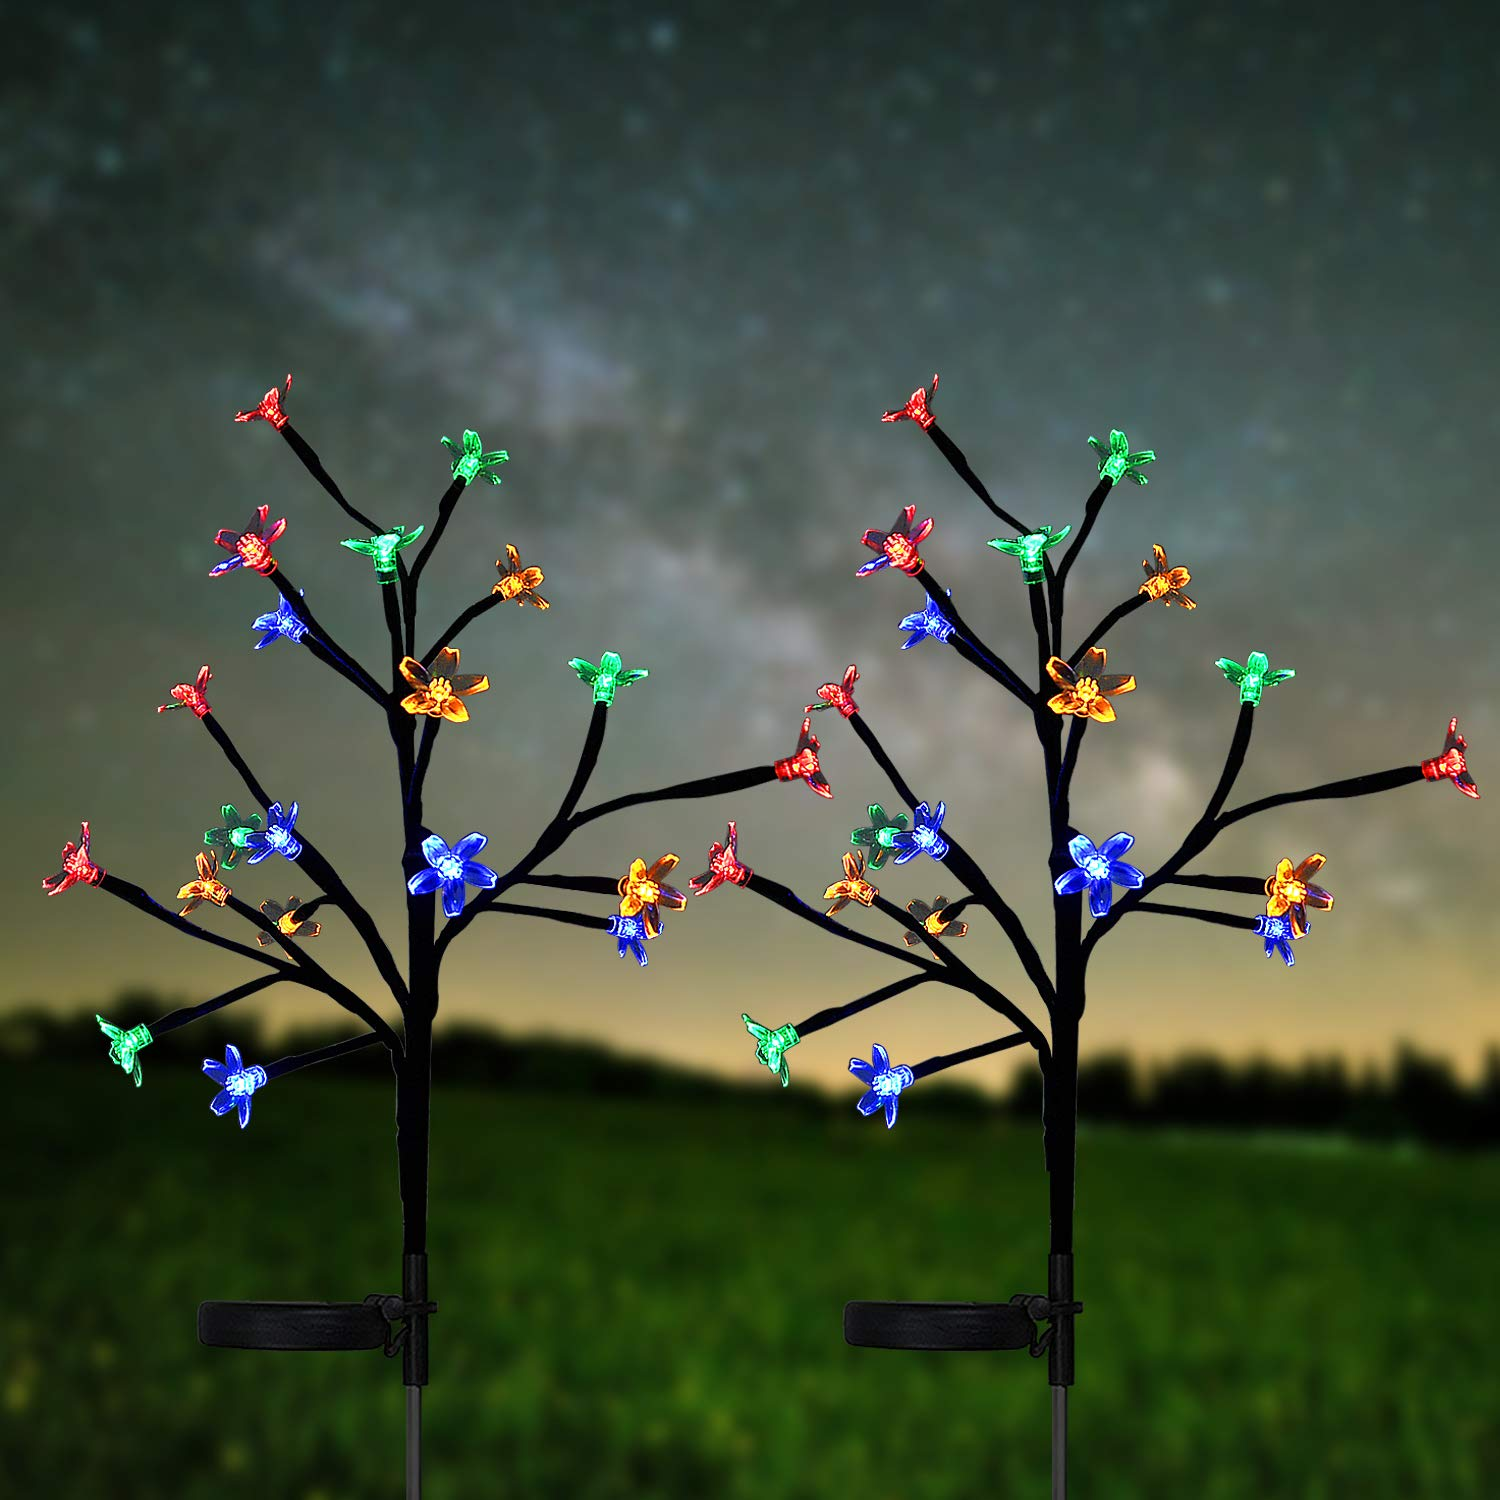 HeyMate Solar Lights Outdoor Decorative- Solar Garden Lights Outdoor Multi Color Cherry Blossoms Christmas Solar Lights for Yard,Lawn,Pathway,Backyard,Christmas,Party (2 Pack) by HeyMate